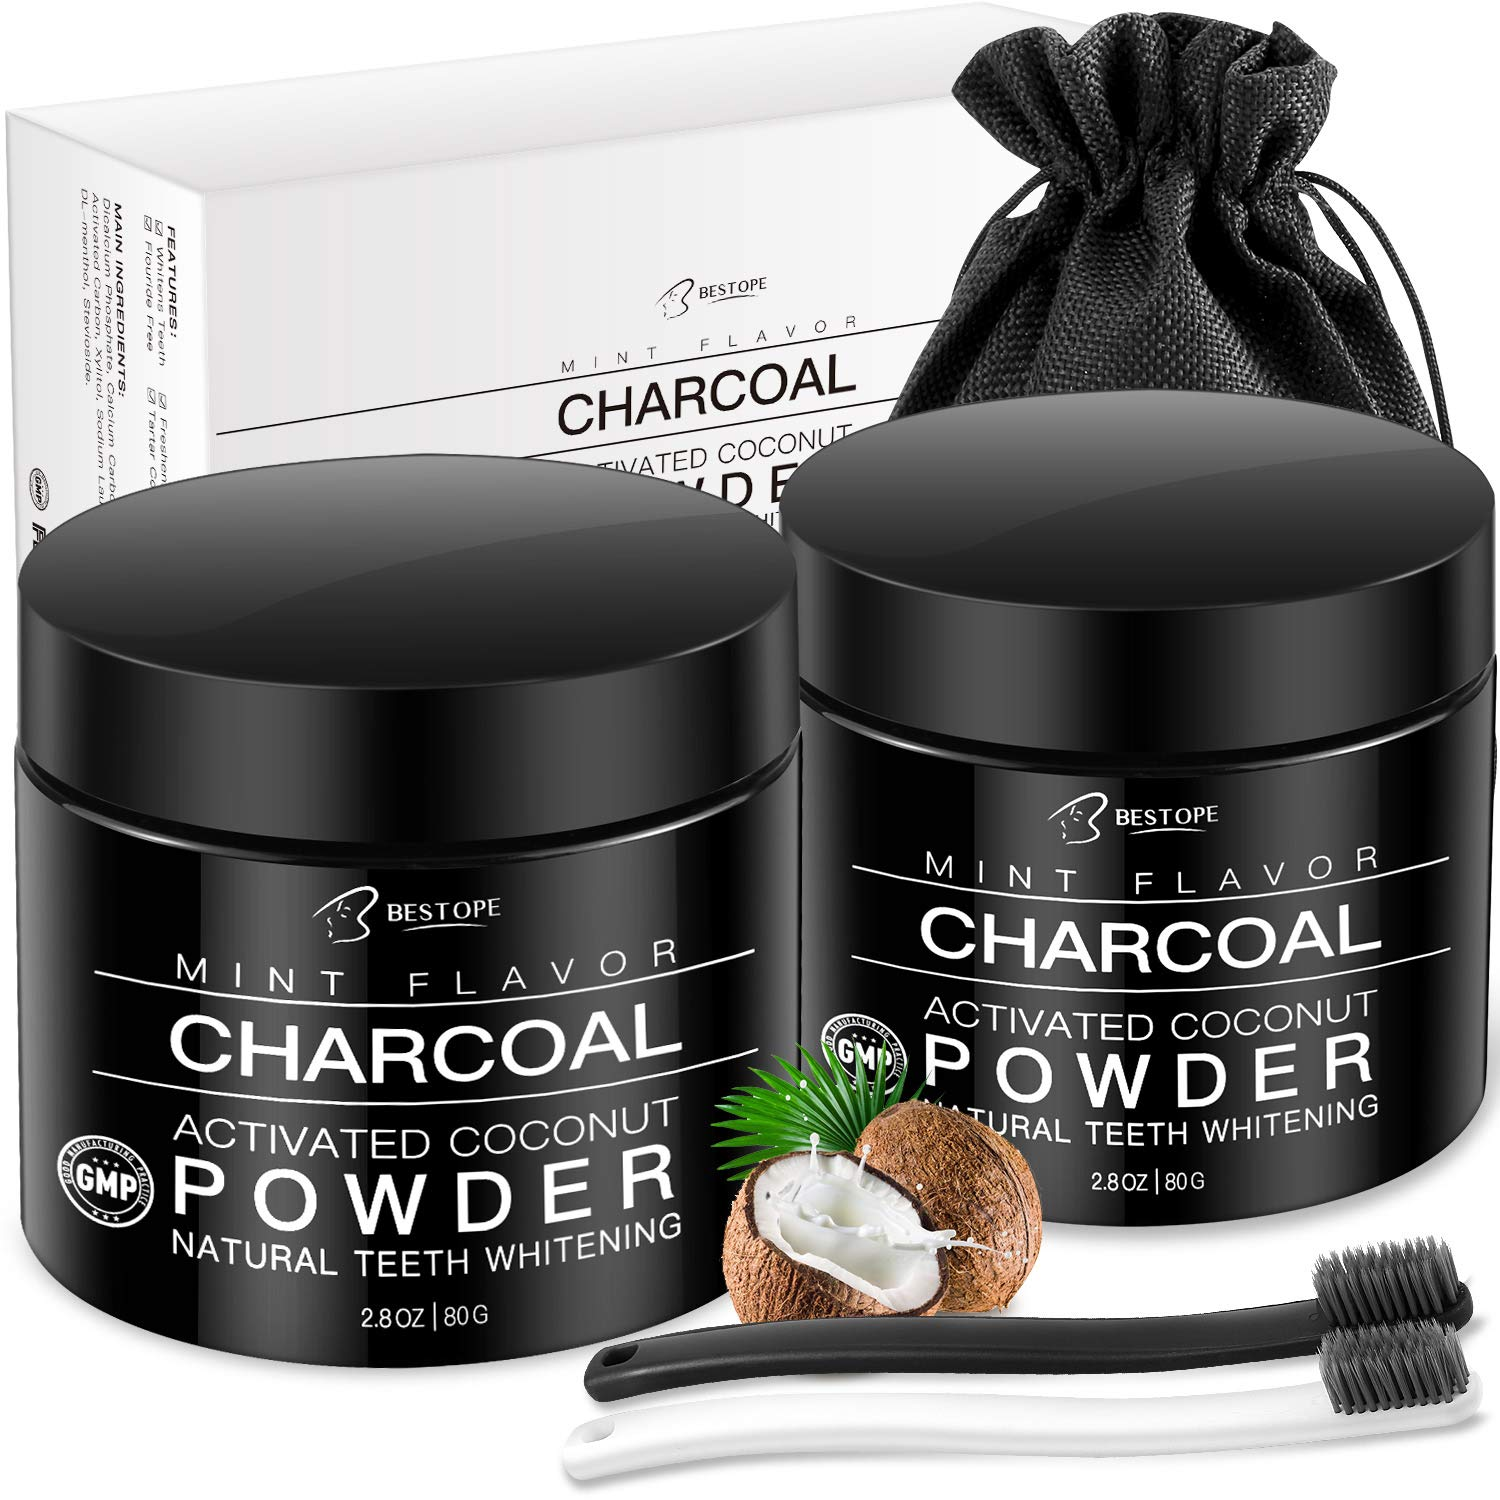 Teeth Whitening[2 Pack],BESTOPE Organic Activated Charcoal Powder with 2 Toothbrushes,Safe and Natural Tooth Whitener for Teeth Stain Removal(4.2 Ounce) product image